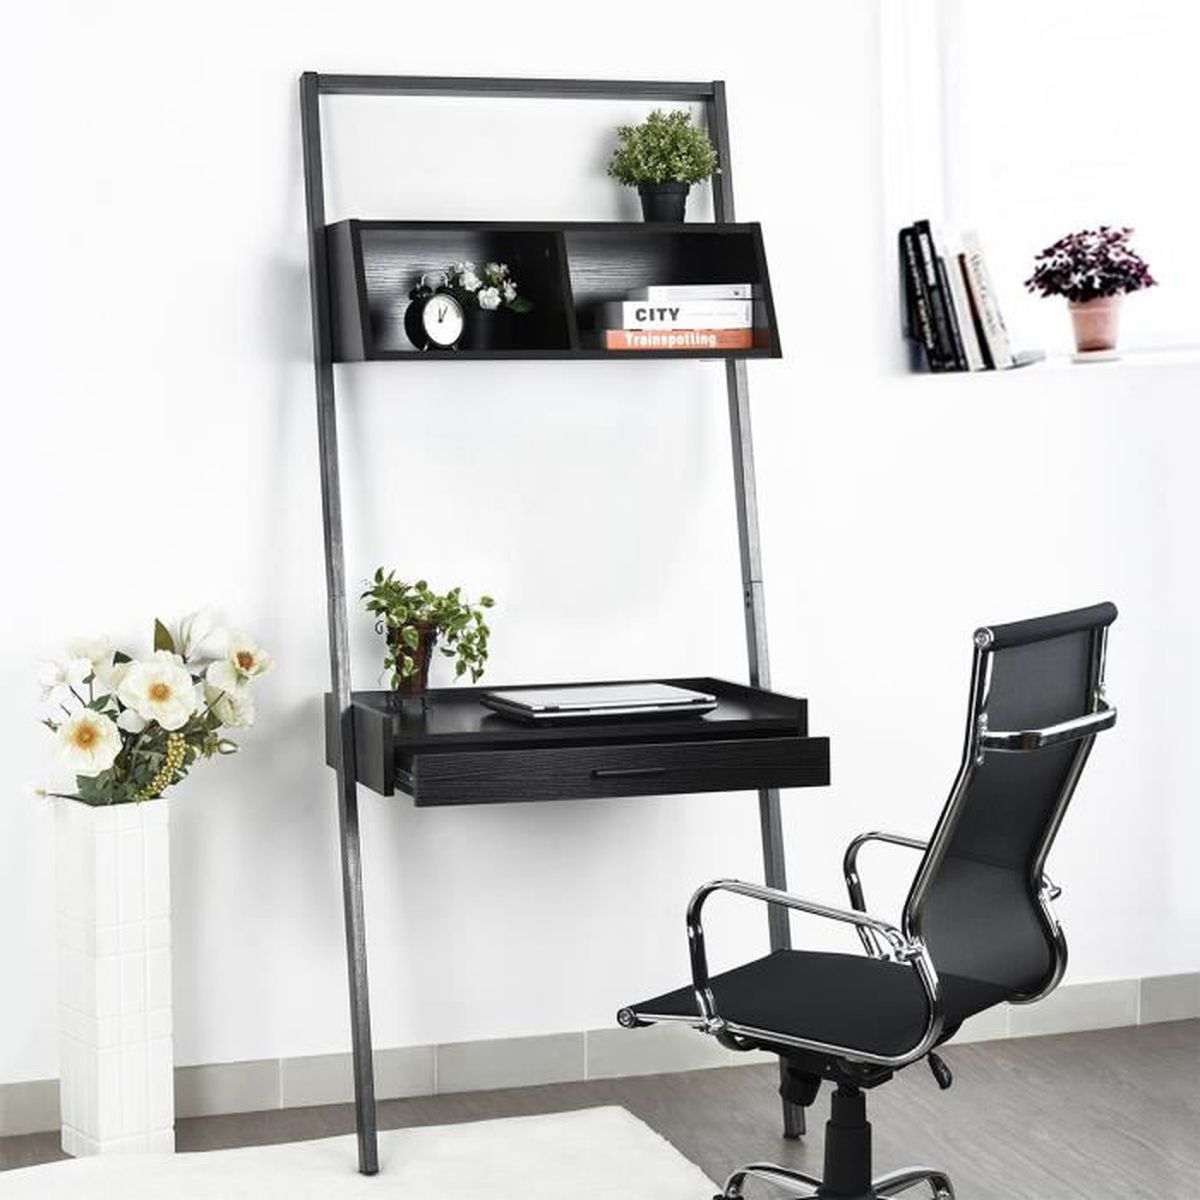 bureau mural ordinateur portable bureau etudiant bureau. Black Bedroom Furniture Sets. Home Design Ideas